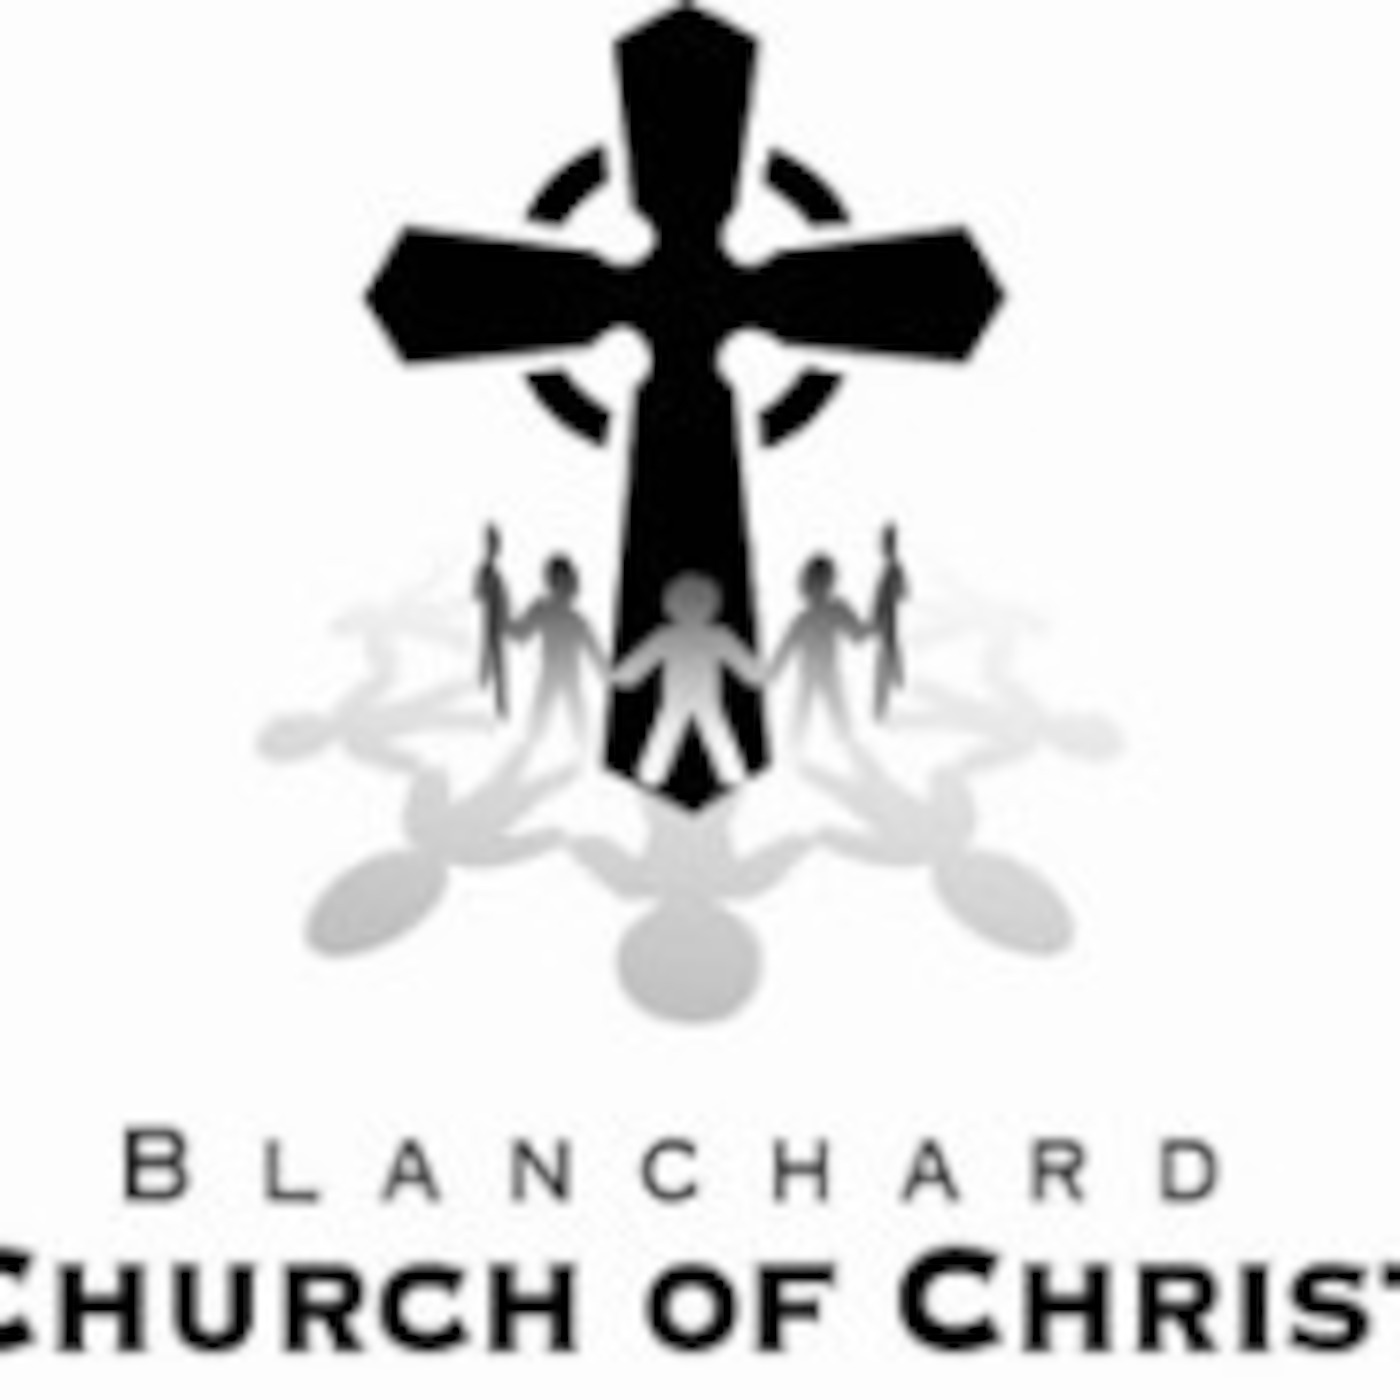 Blanchard Church of Christ